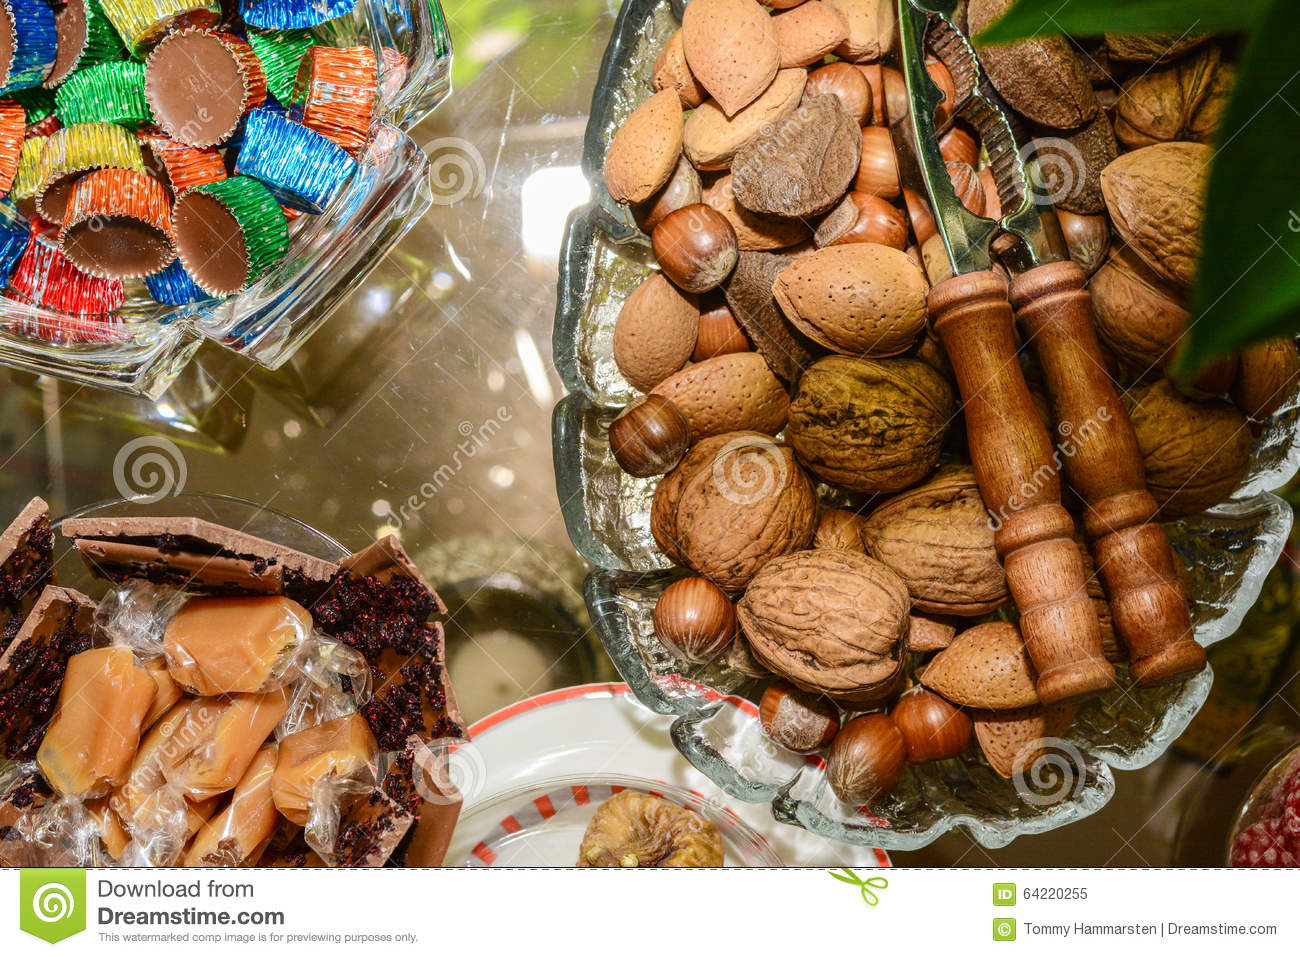 download swedish christmas food stock image image of temptation 64220255 - Swedish Christmas Food